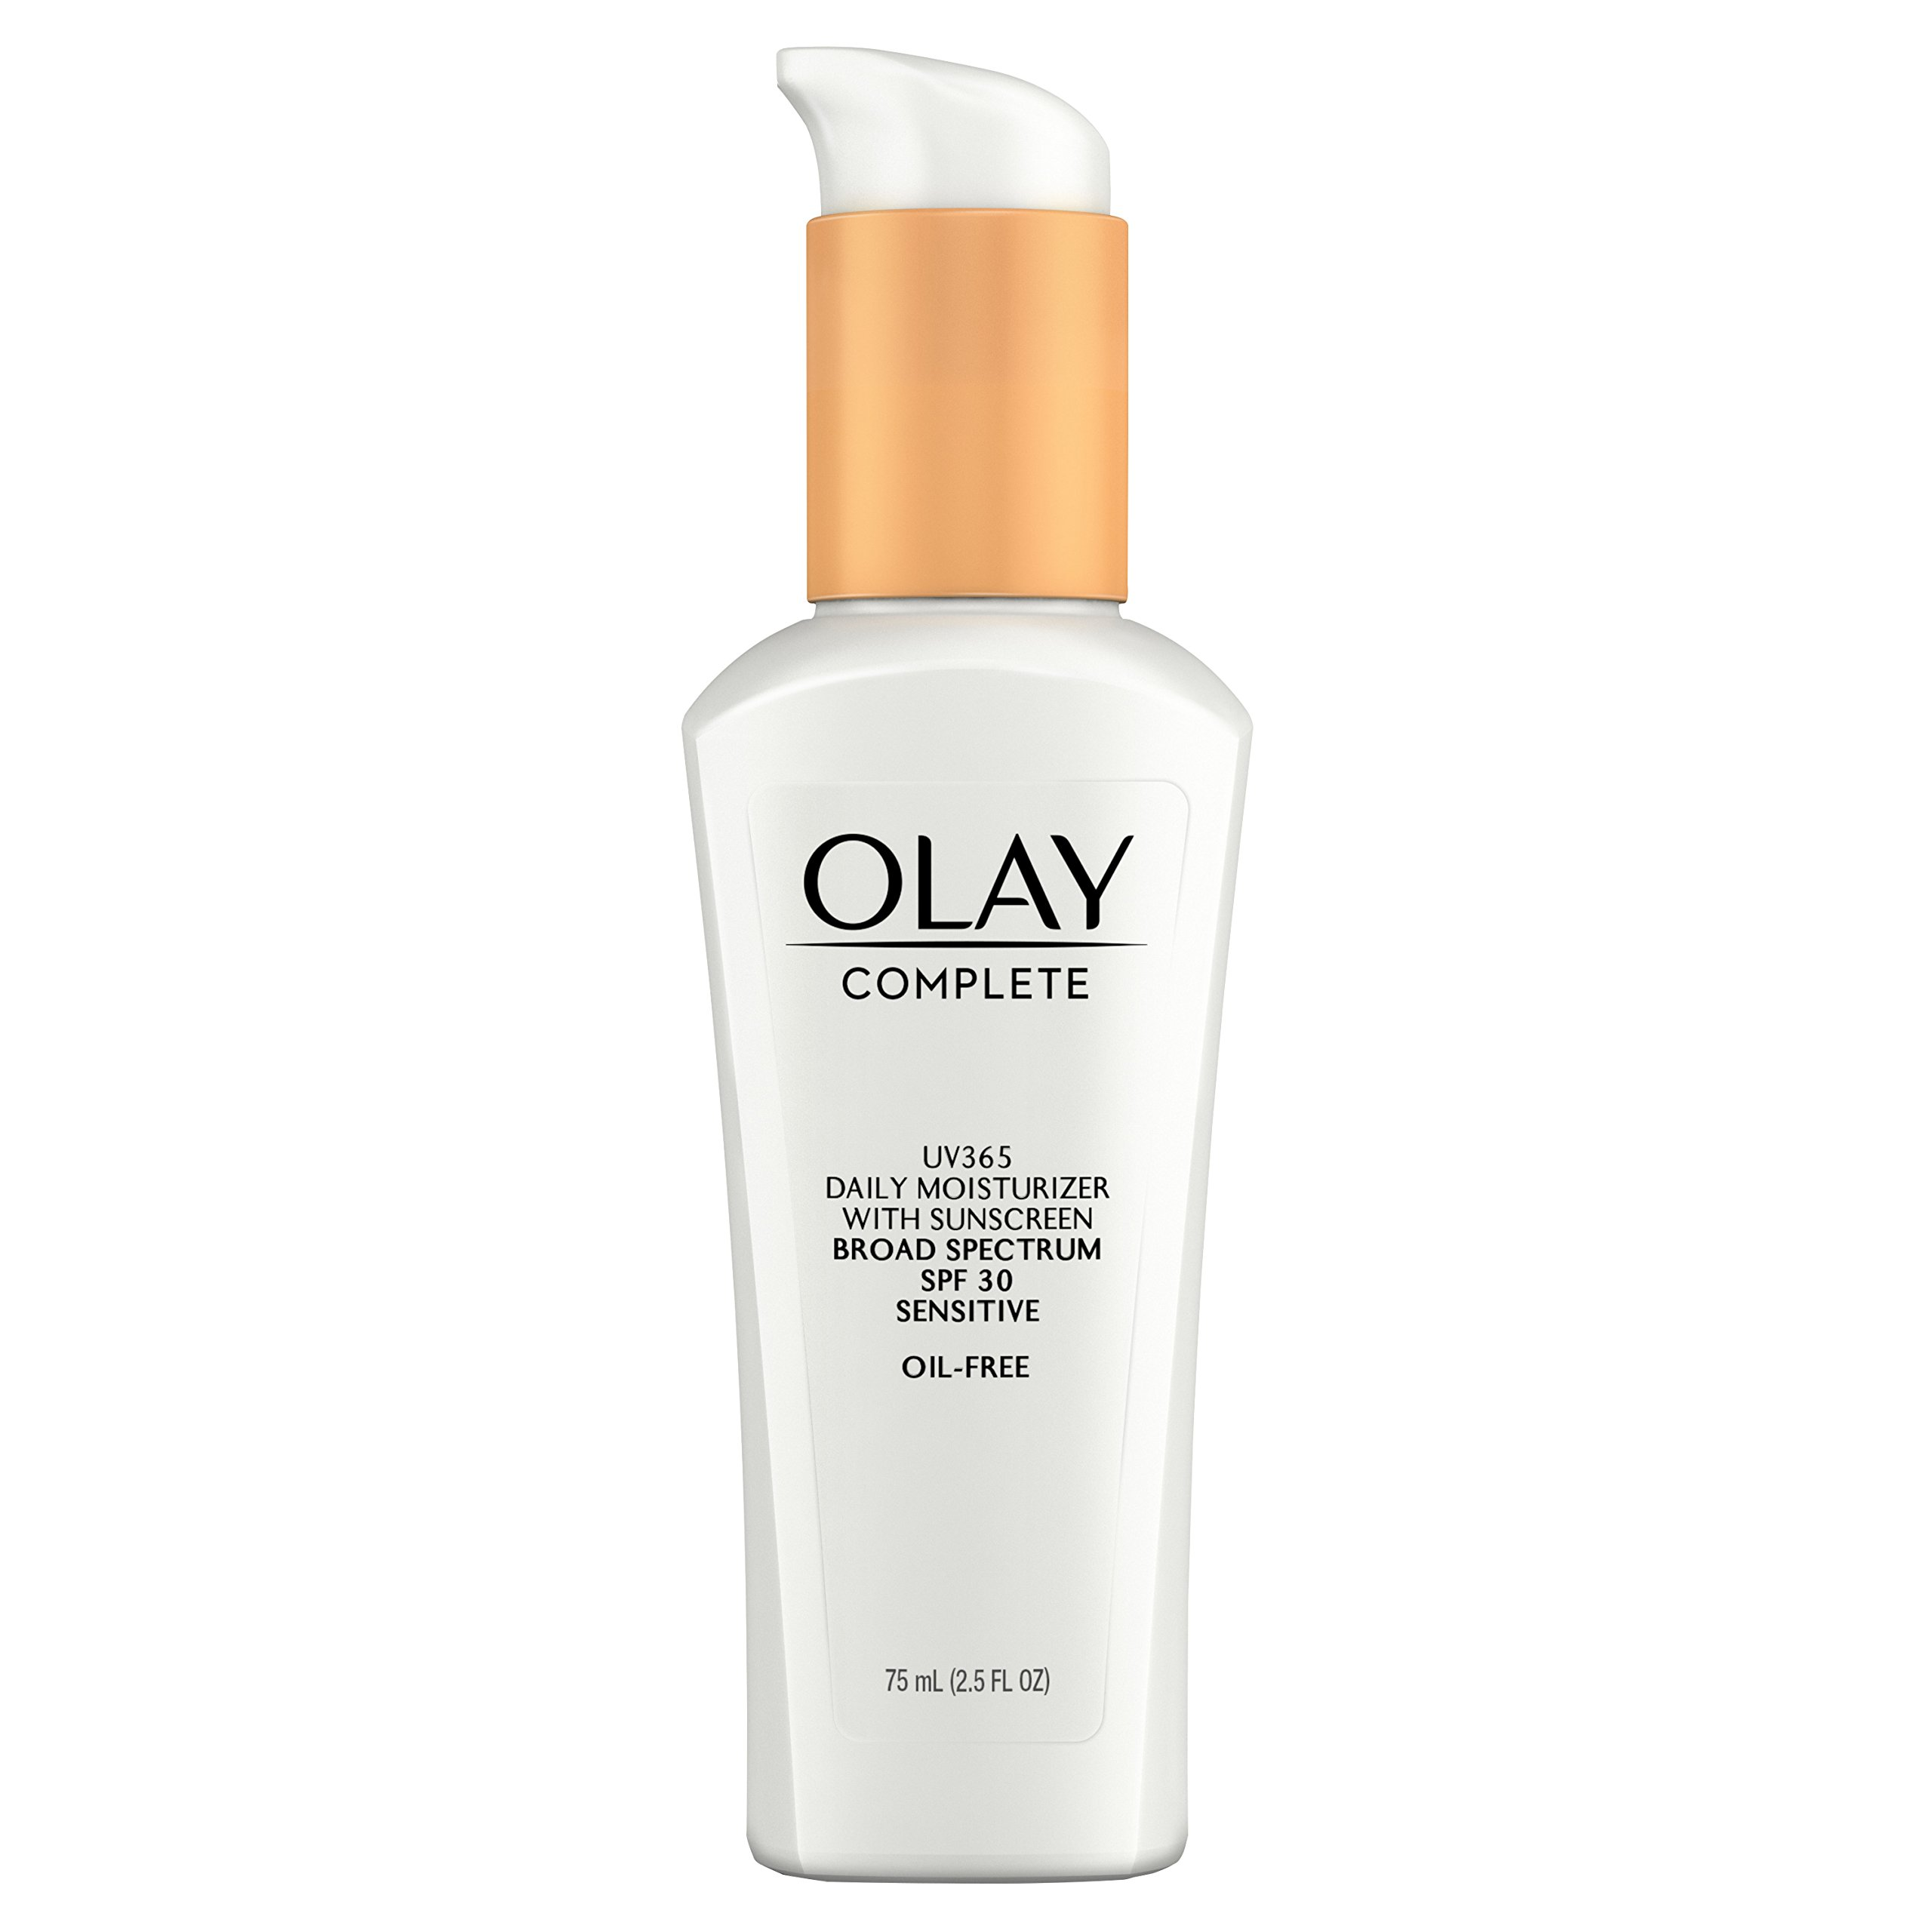 Olay Complete Daily Defense All Day Moisturizer With Sunscreen SPF30 Sensitive Skin, 2.5 fl. Oz, (Pack of 2)